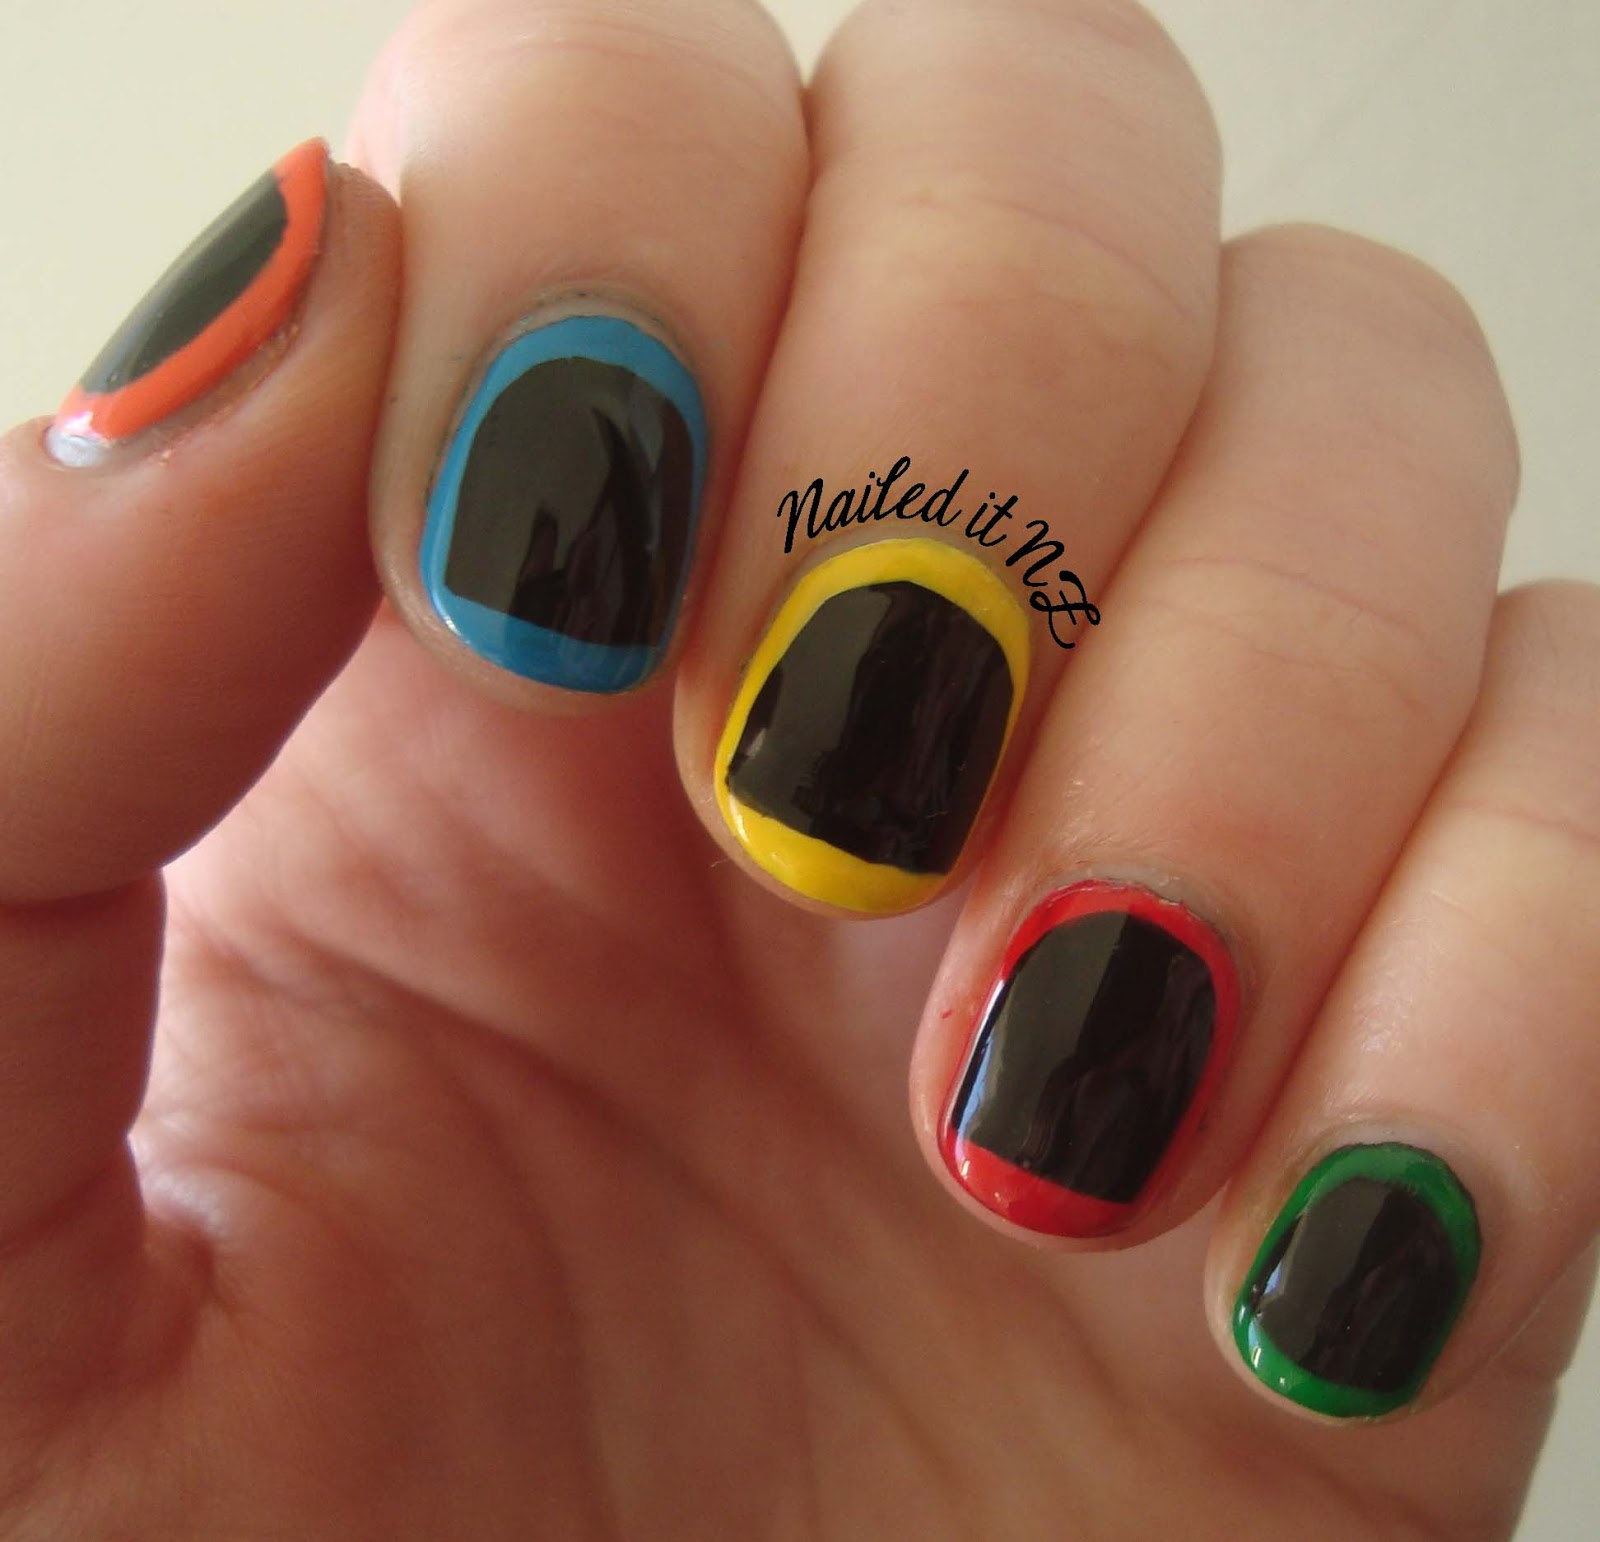 Nail art for short nails #2: Guitar Hero Nails